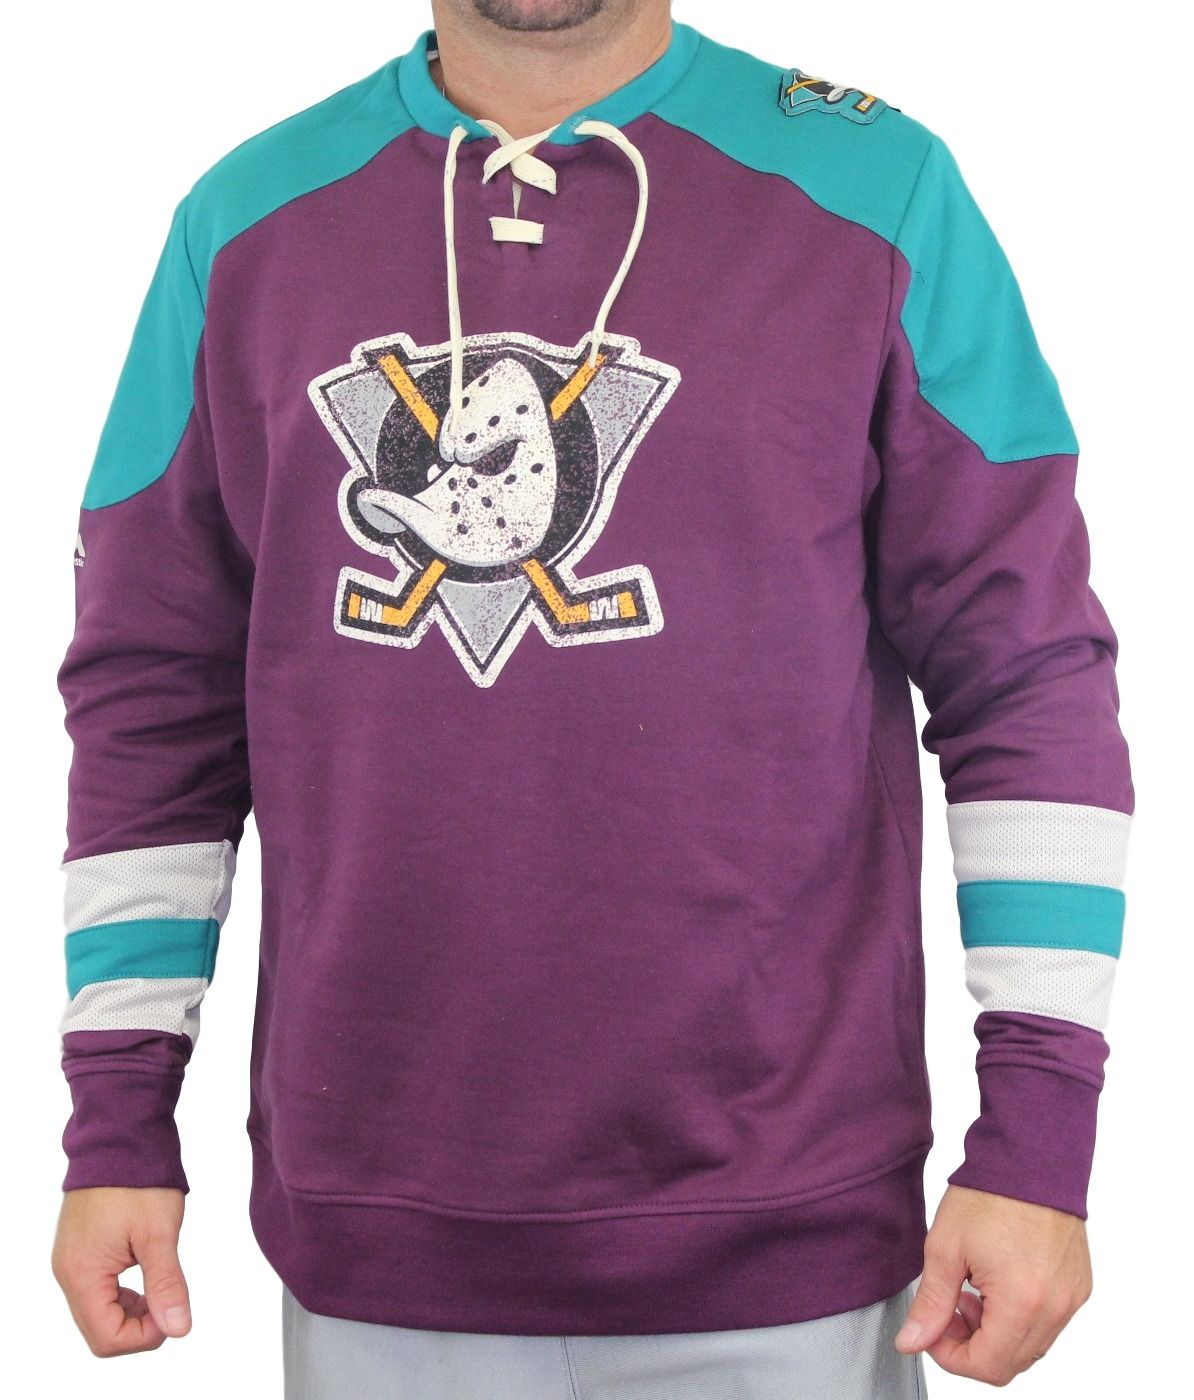 168101b49 Anaheim Ducks Majestic NHL